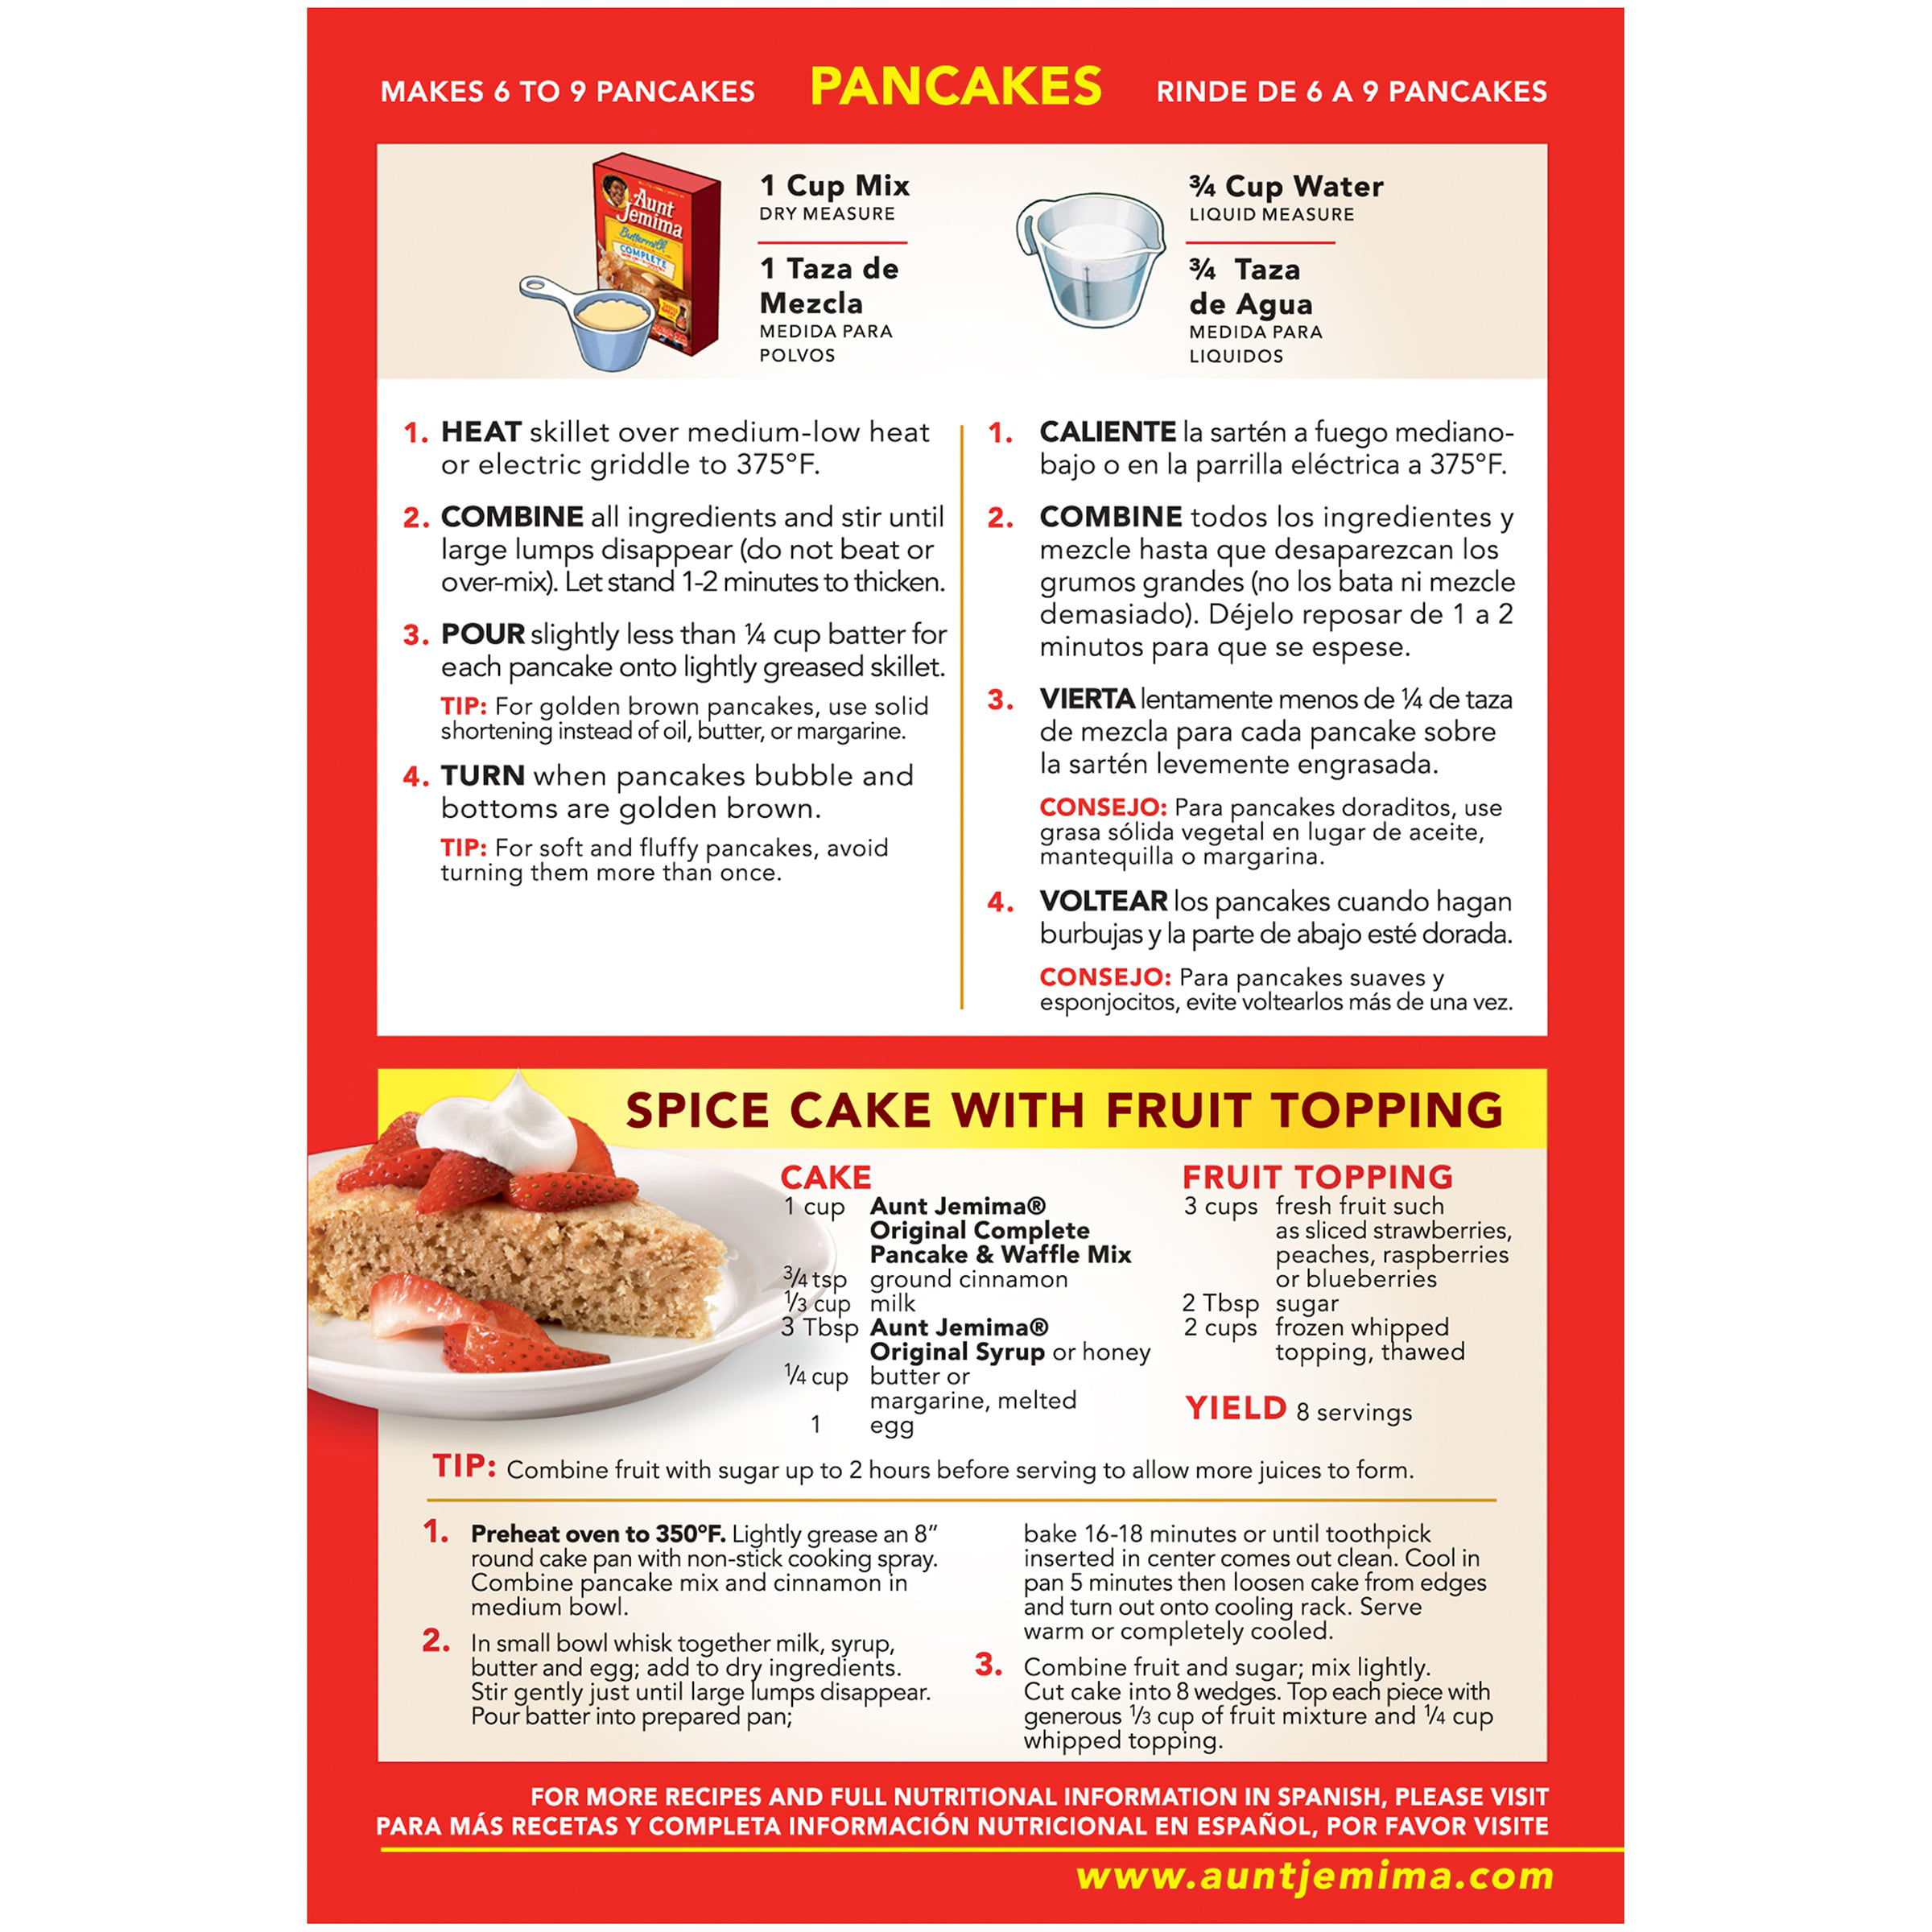 Aunt jemima pancake recipe back of box blog dandk recipe just add water directions besto blog source aunt jemima ermilk complete pancake waffle mix 16 ccuart Images